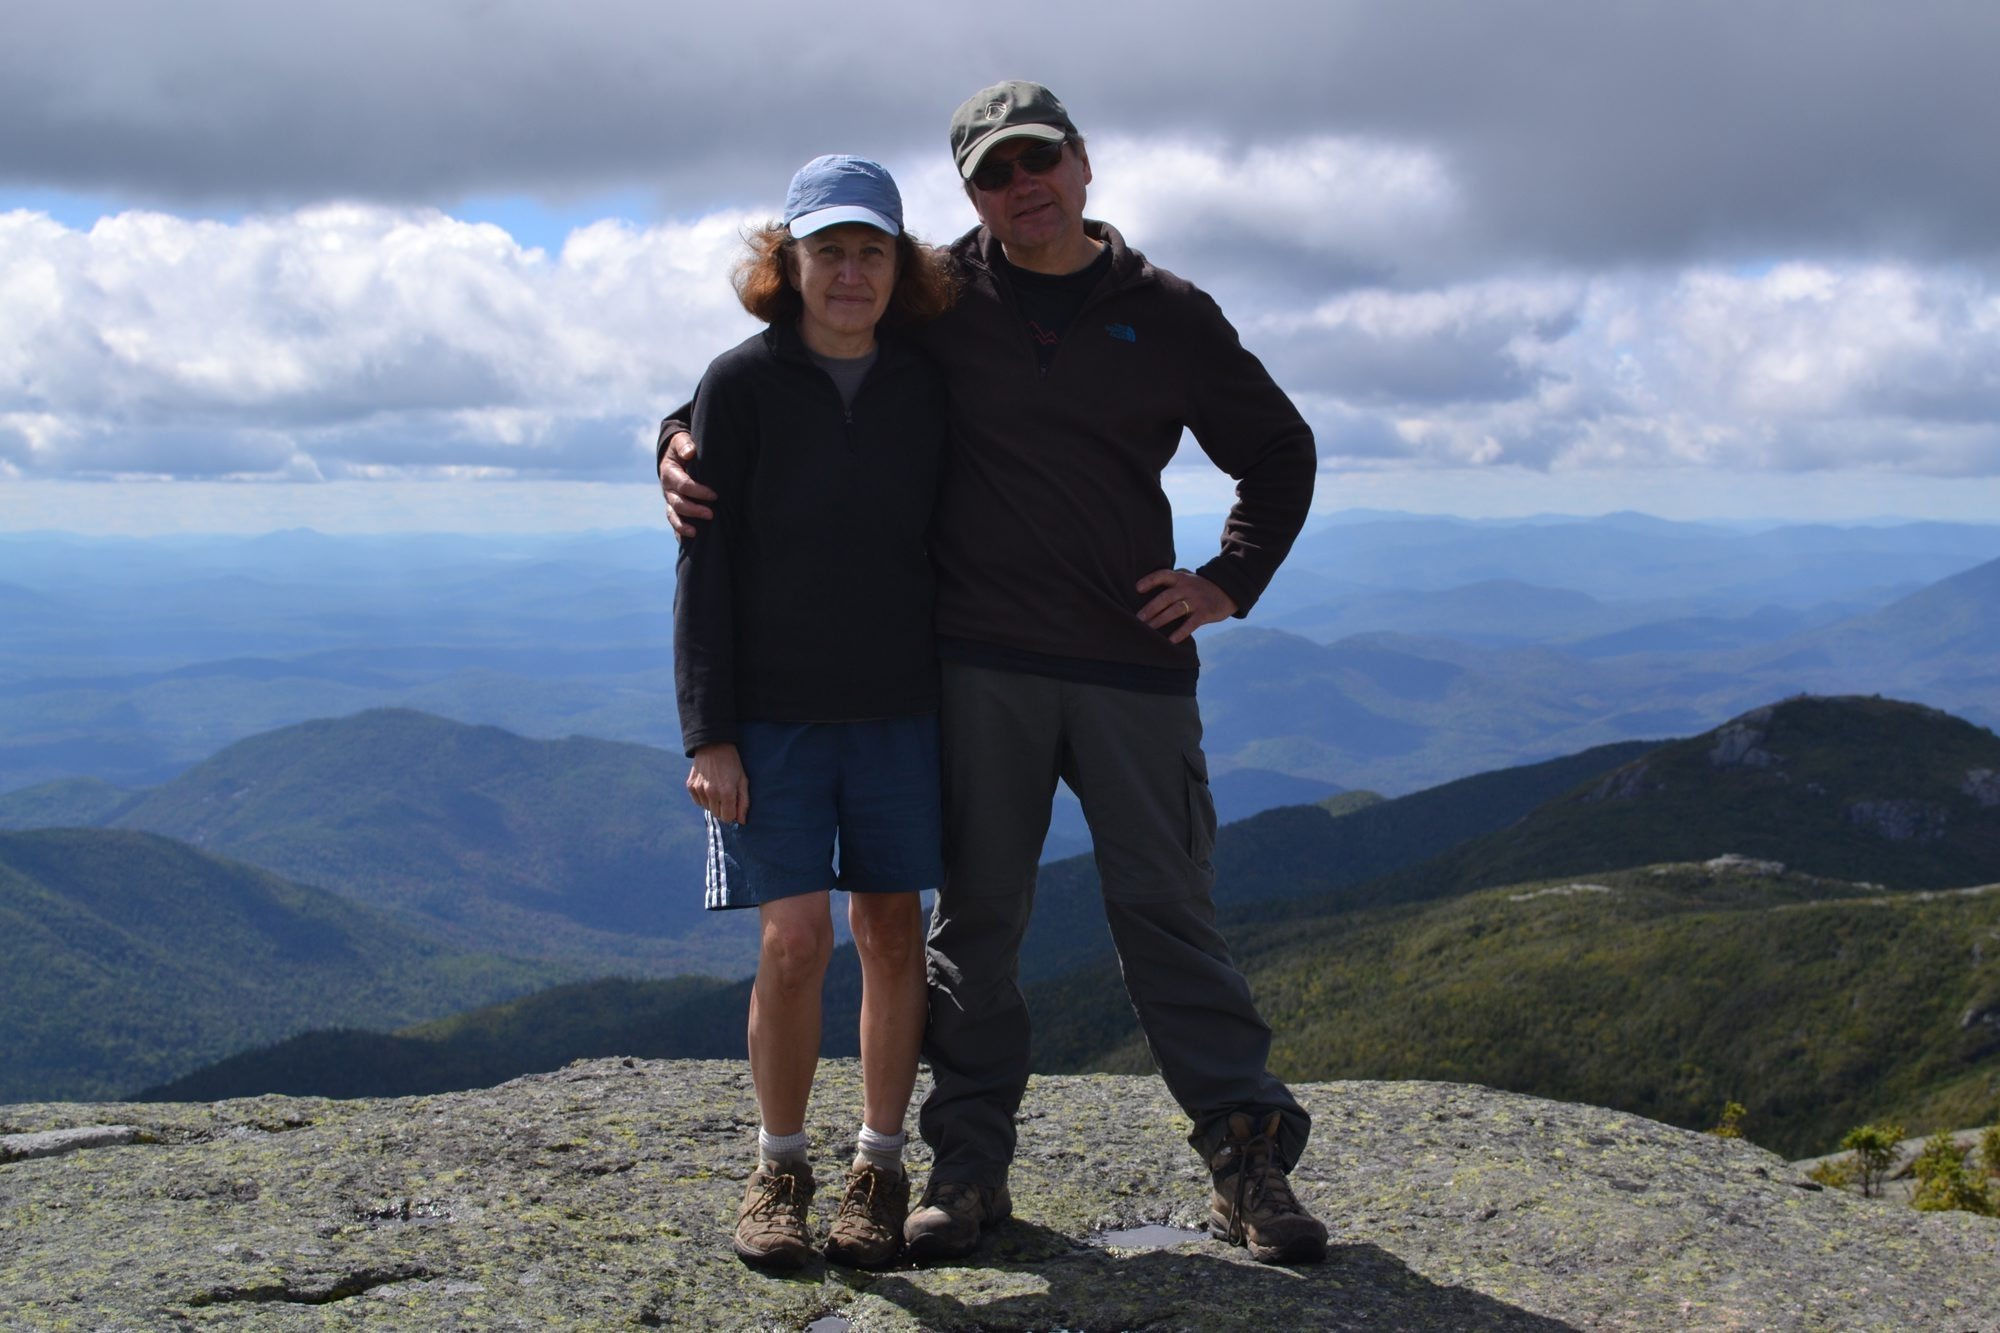 Donna and Marty Ruszaj take trail mix and apples along on their hikes. Here, they are in the Adirondacks.